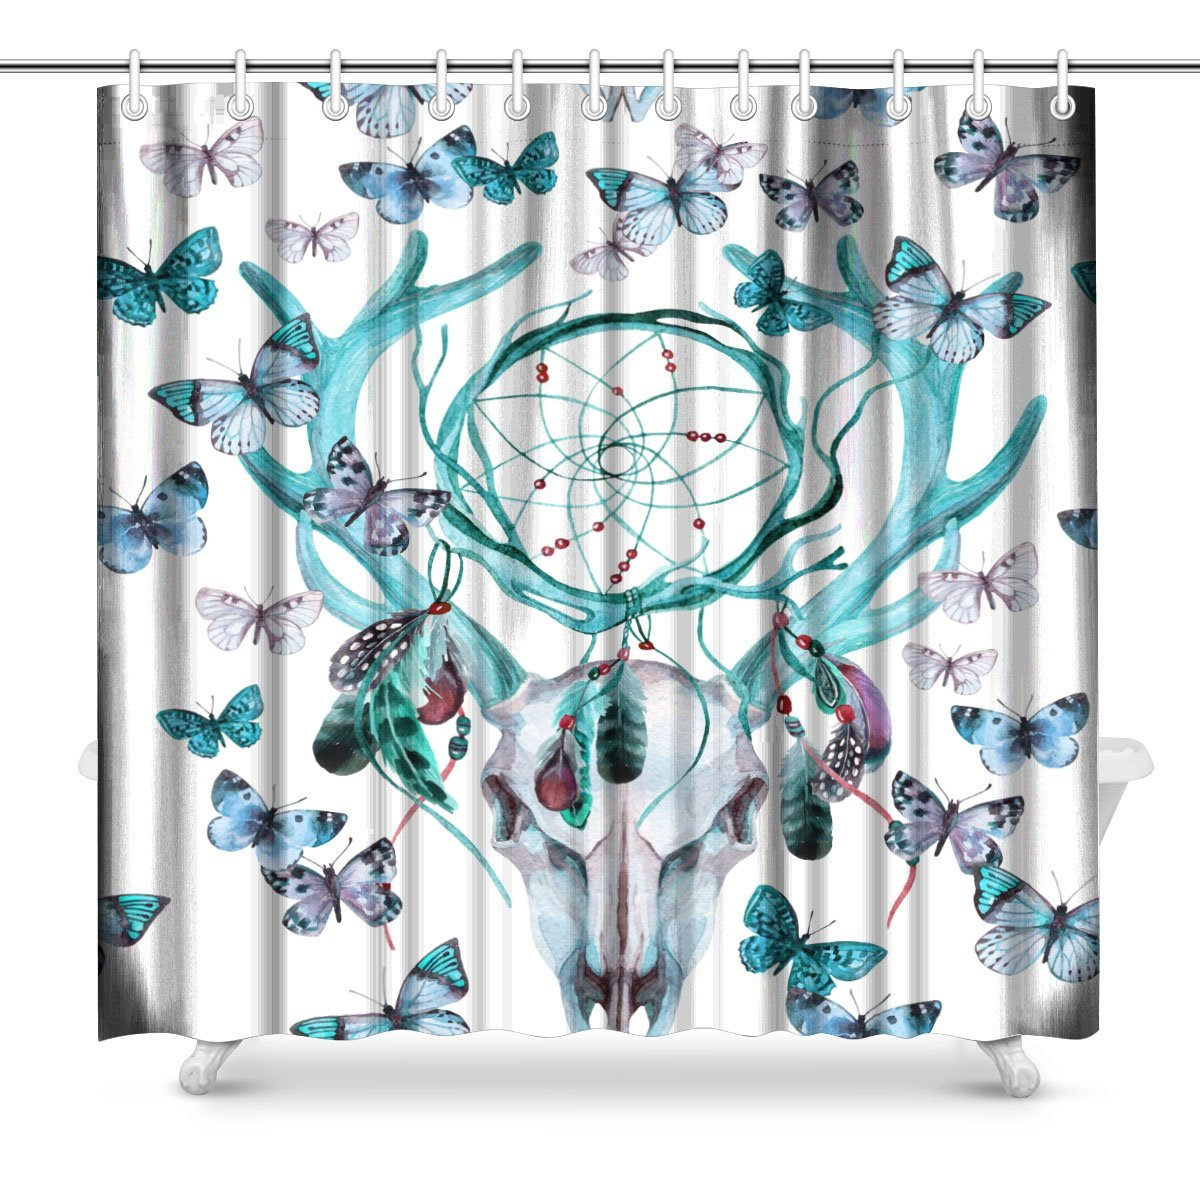 Deer Animal Skull with Dream Cather and Butterfly Polyester Fabric Bathroom Shower Curtain 72 x 72 Inches Long